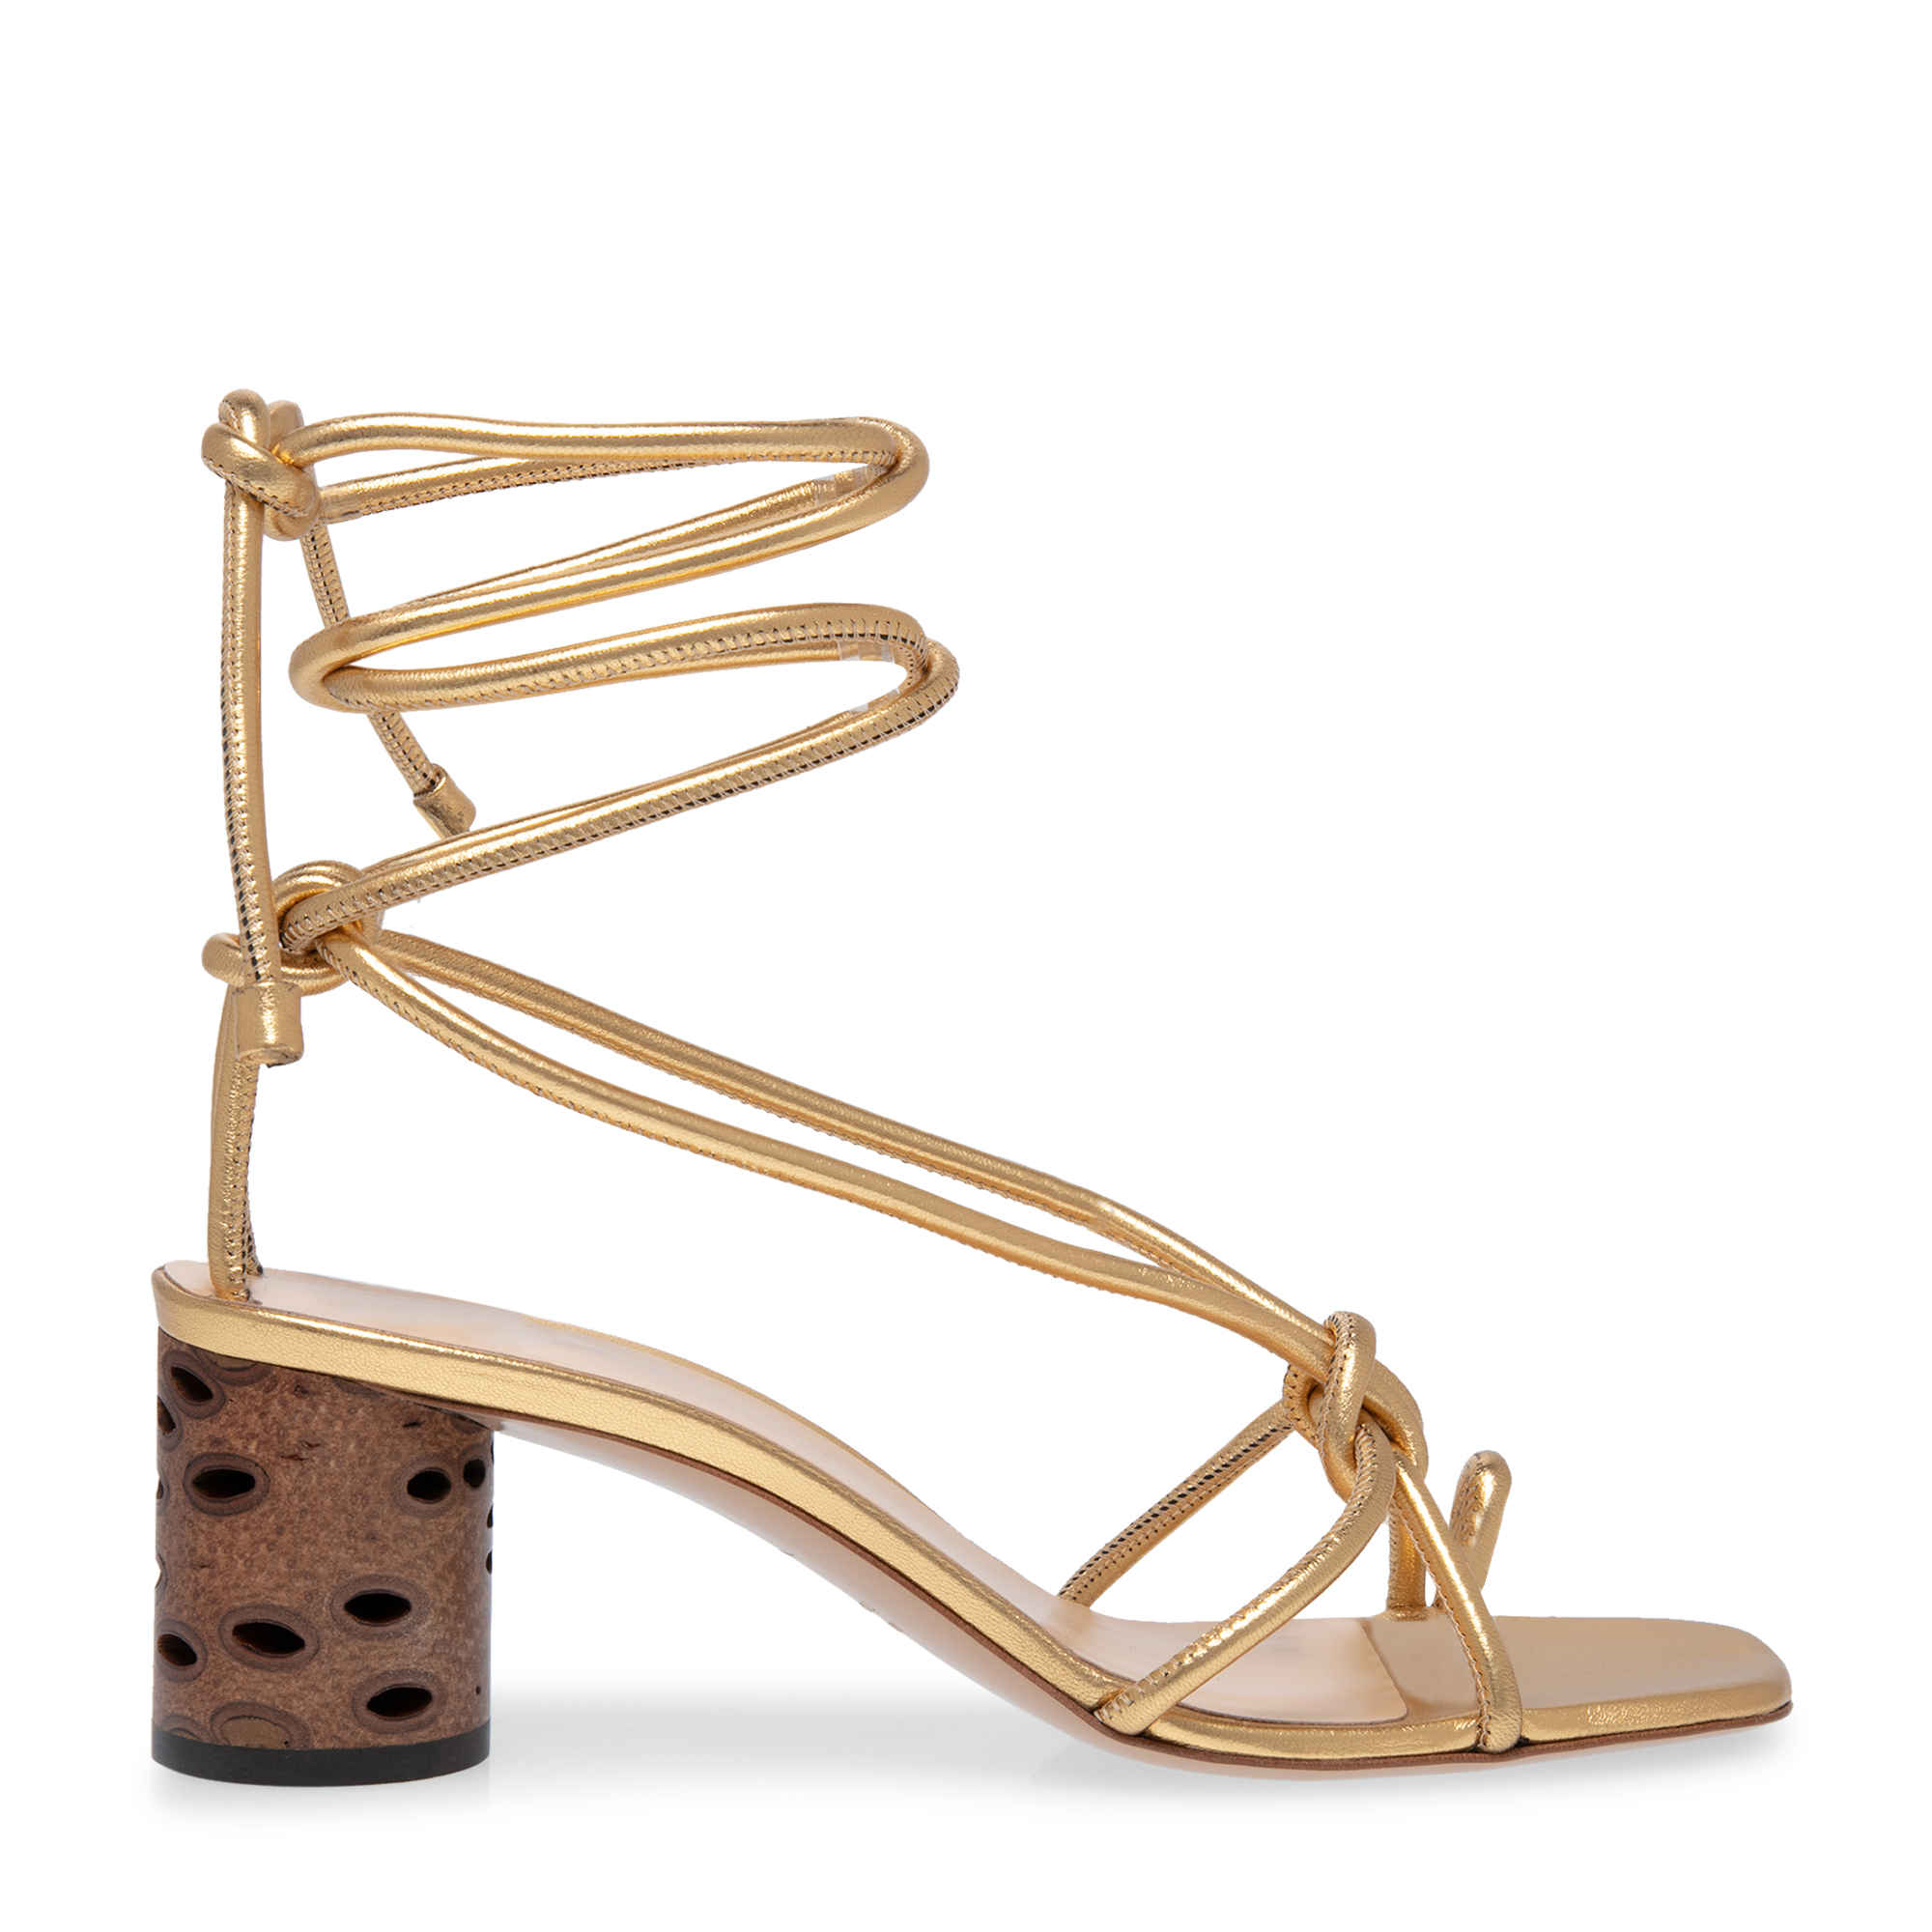 Bad Banksia Strappy sandals